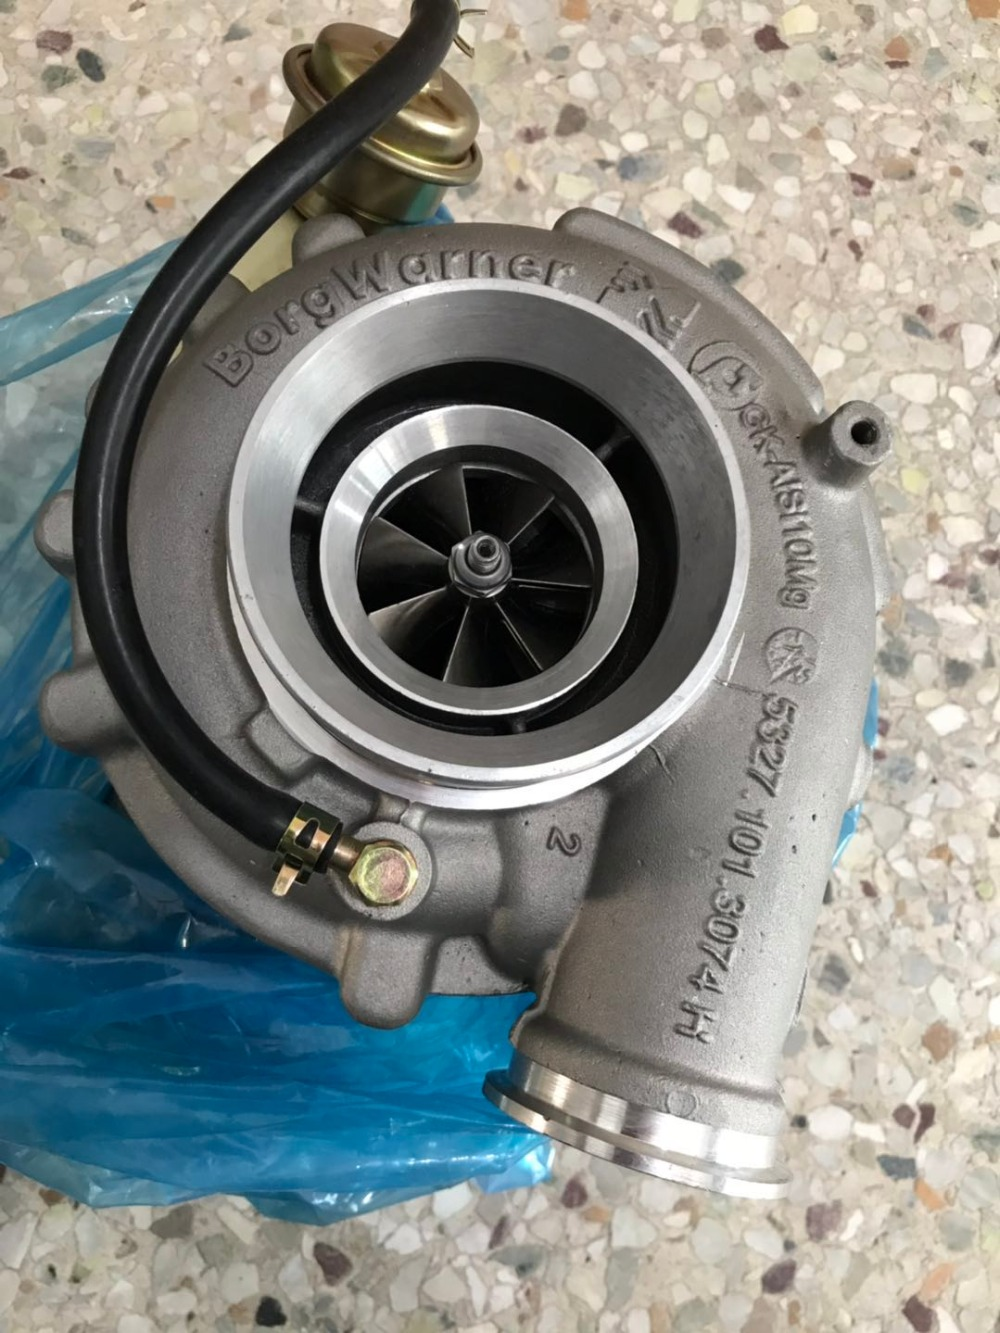 Xinyuchen turbocharger for turbocharger K27 for truck engine 53279887120 9060964699 A9060964699|Turbocharger| |  - title=